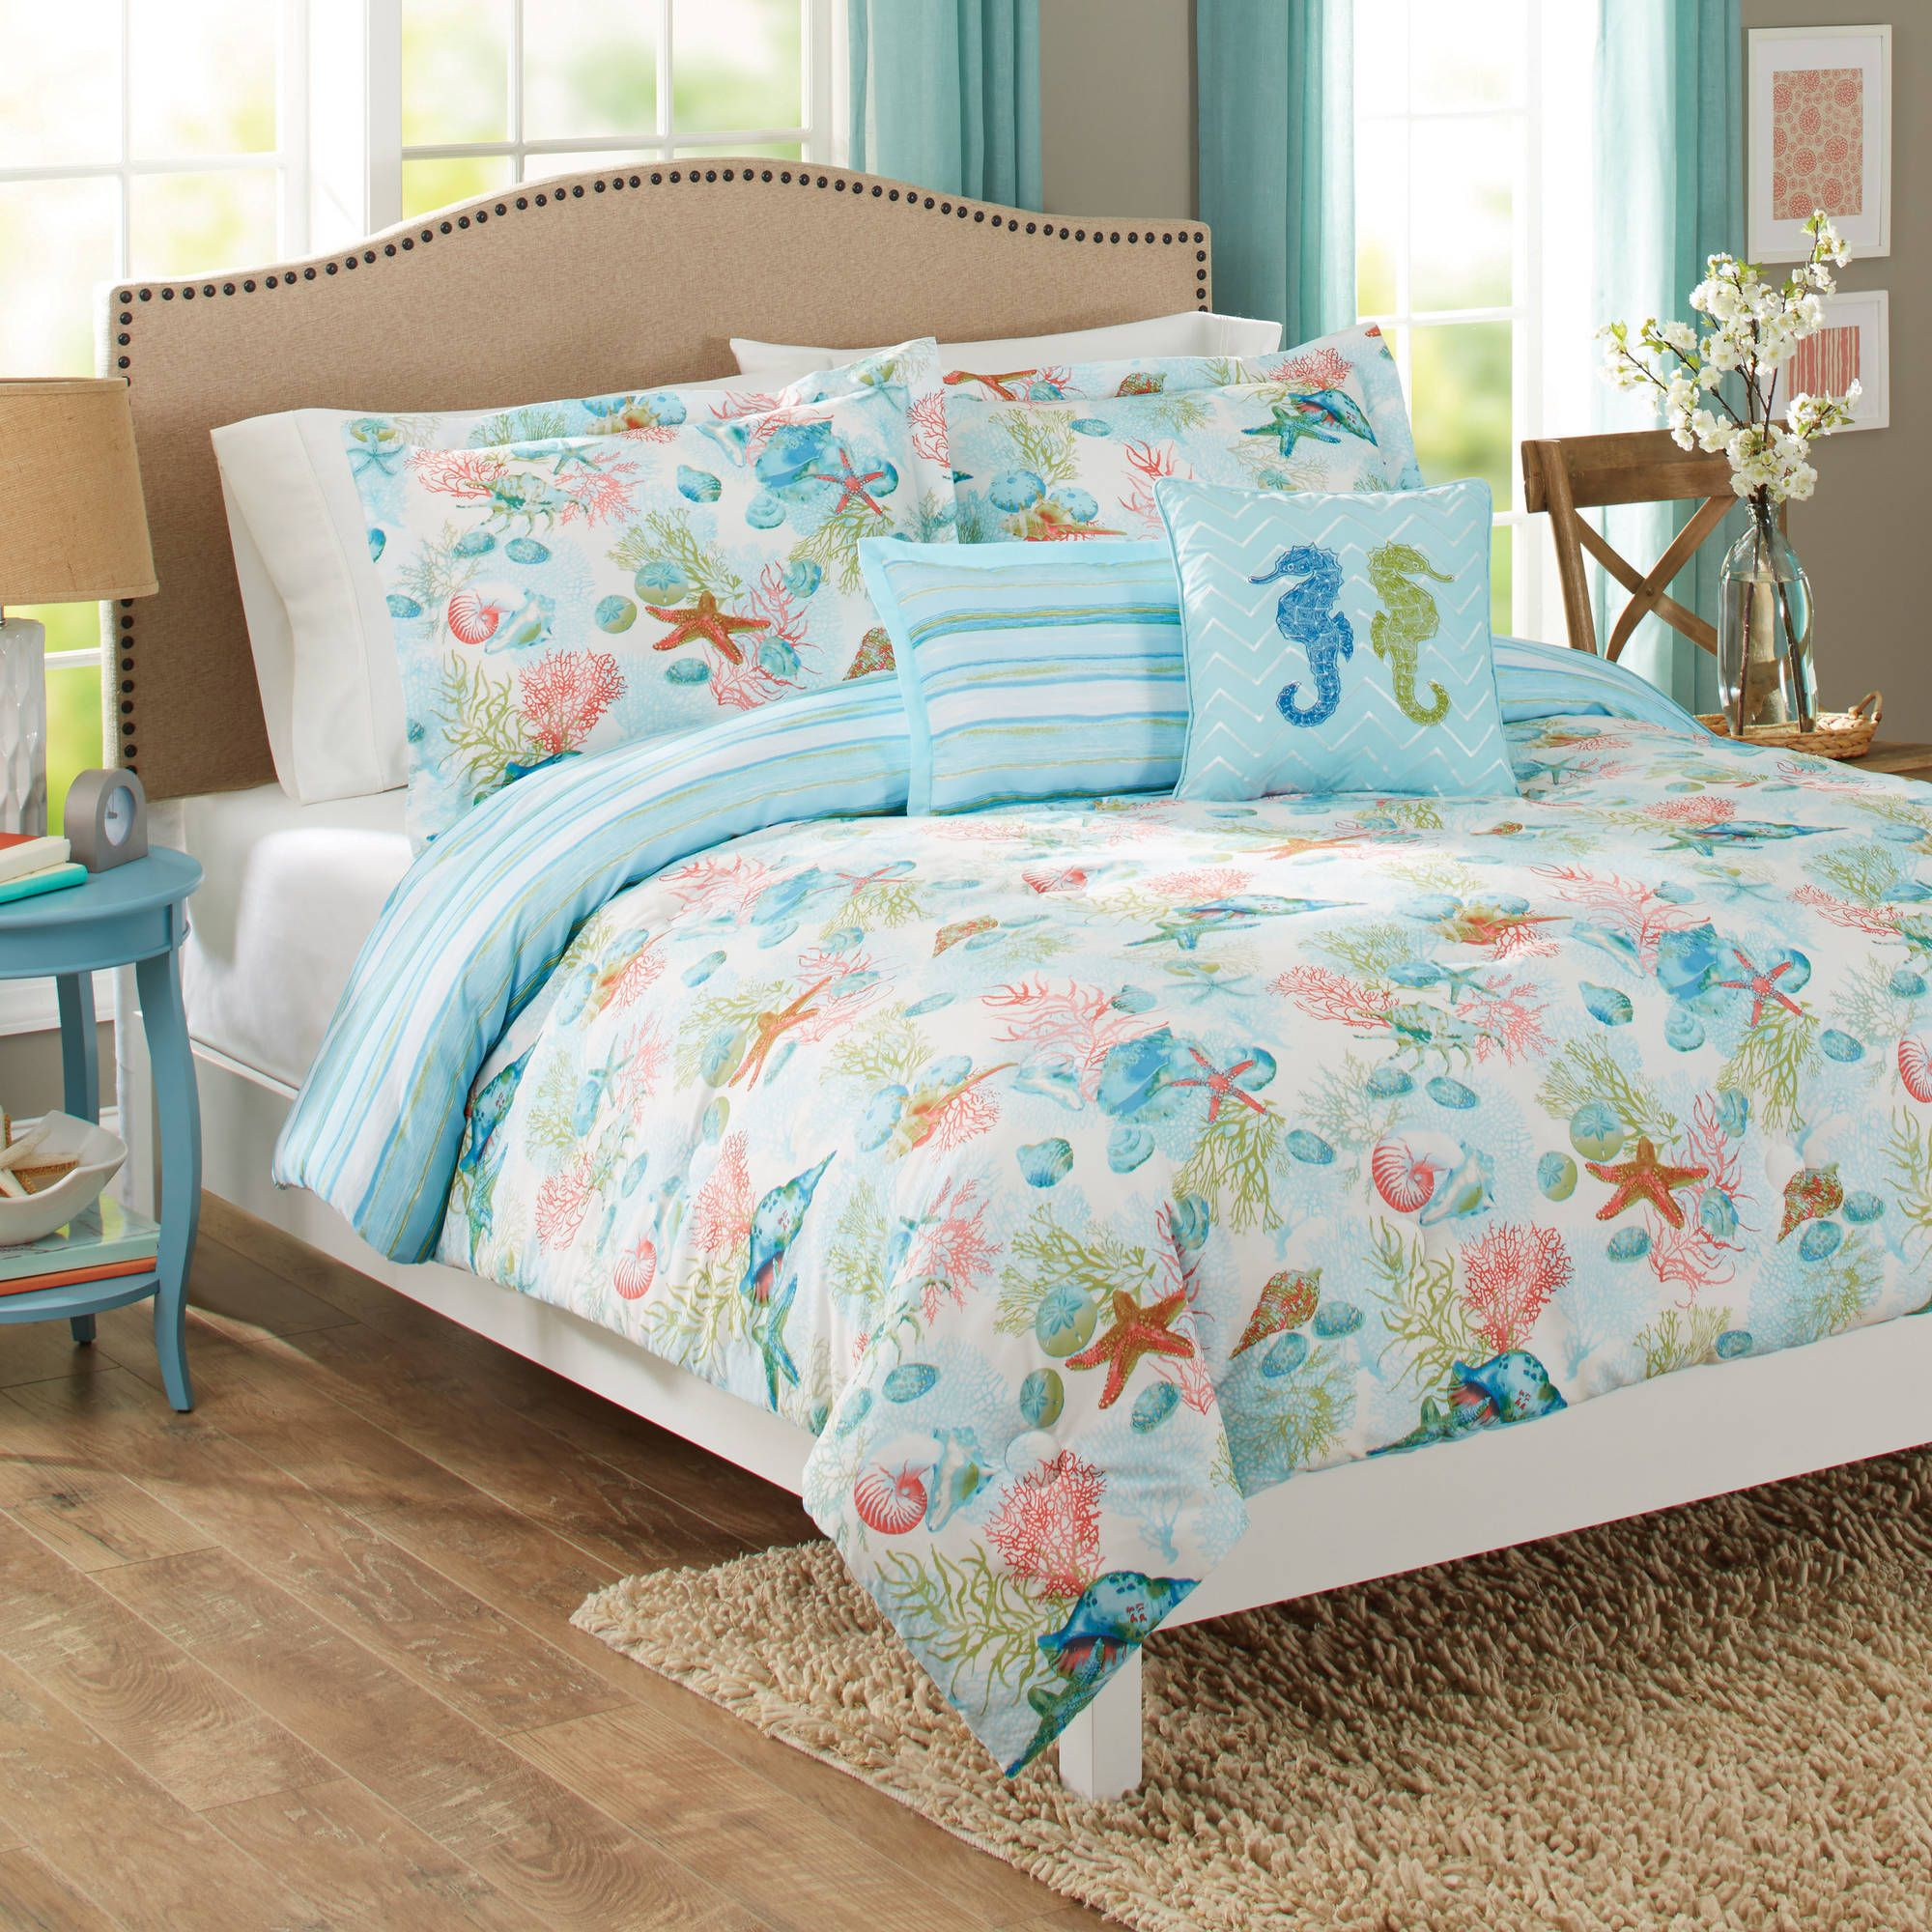 Vitalis Bettdecken Better Homes And Gardens Beach Day 5 Piece Comforter Set Peach